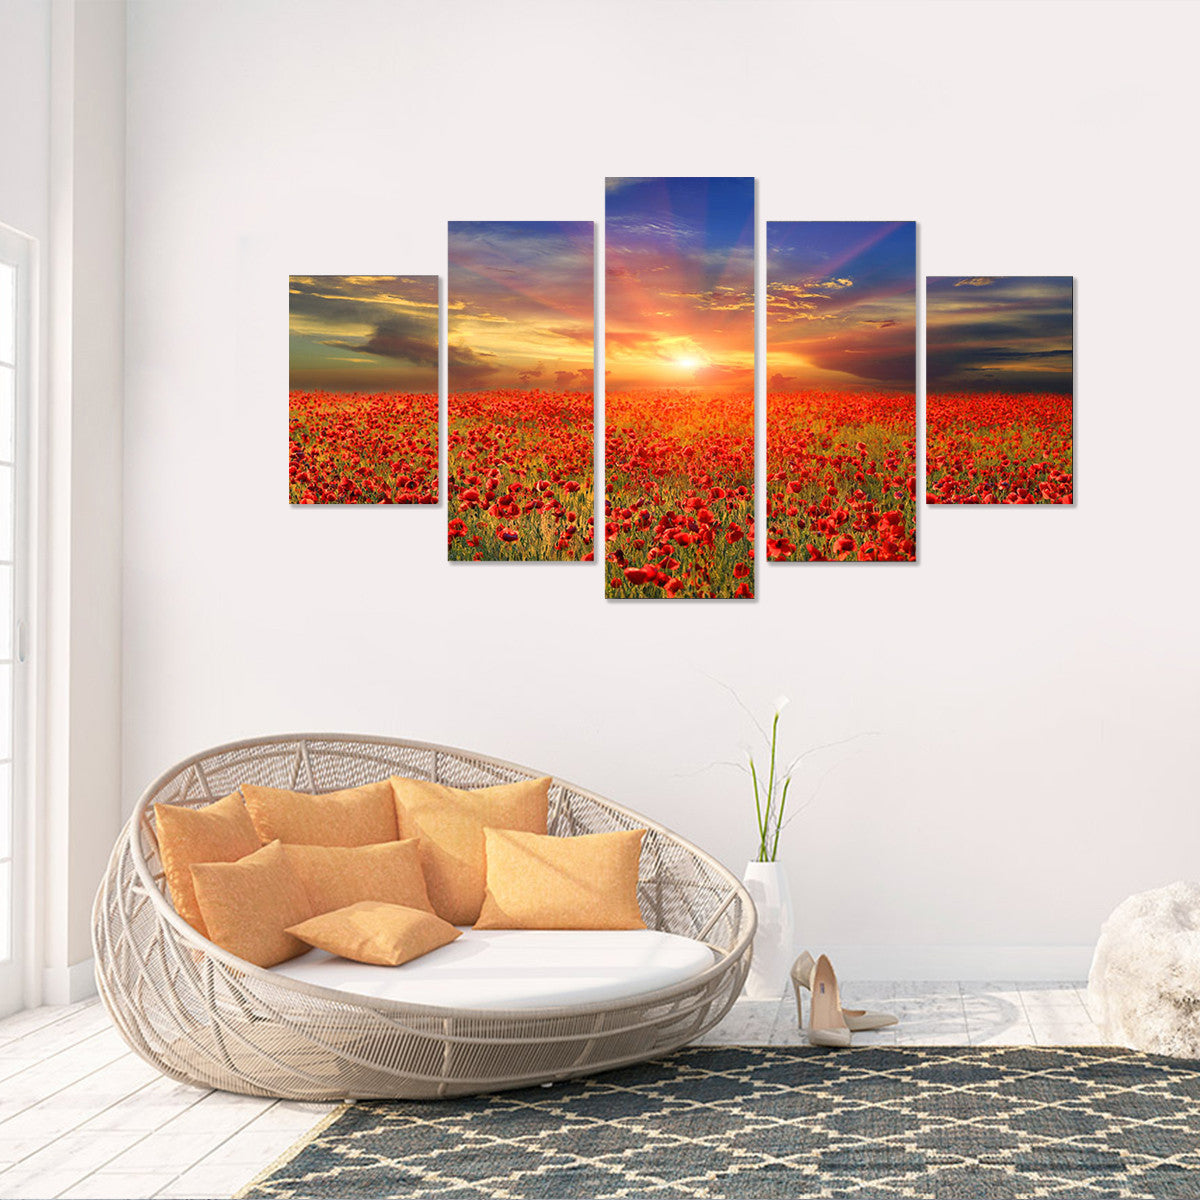 Sea of Flowers 5 Piece Canvas